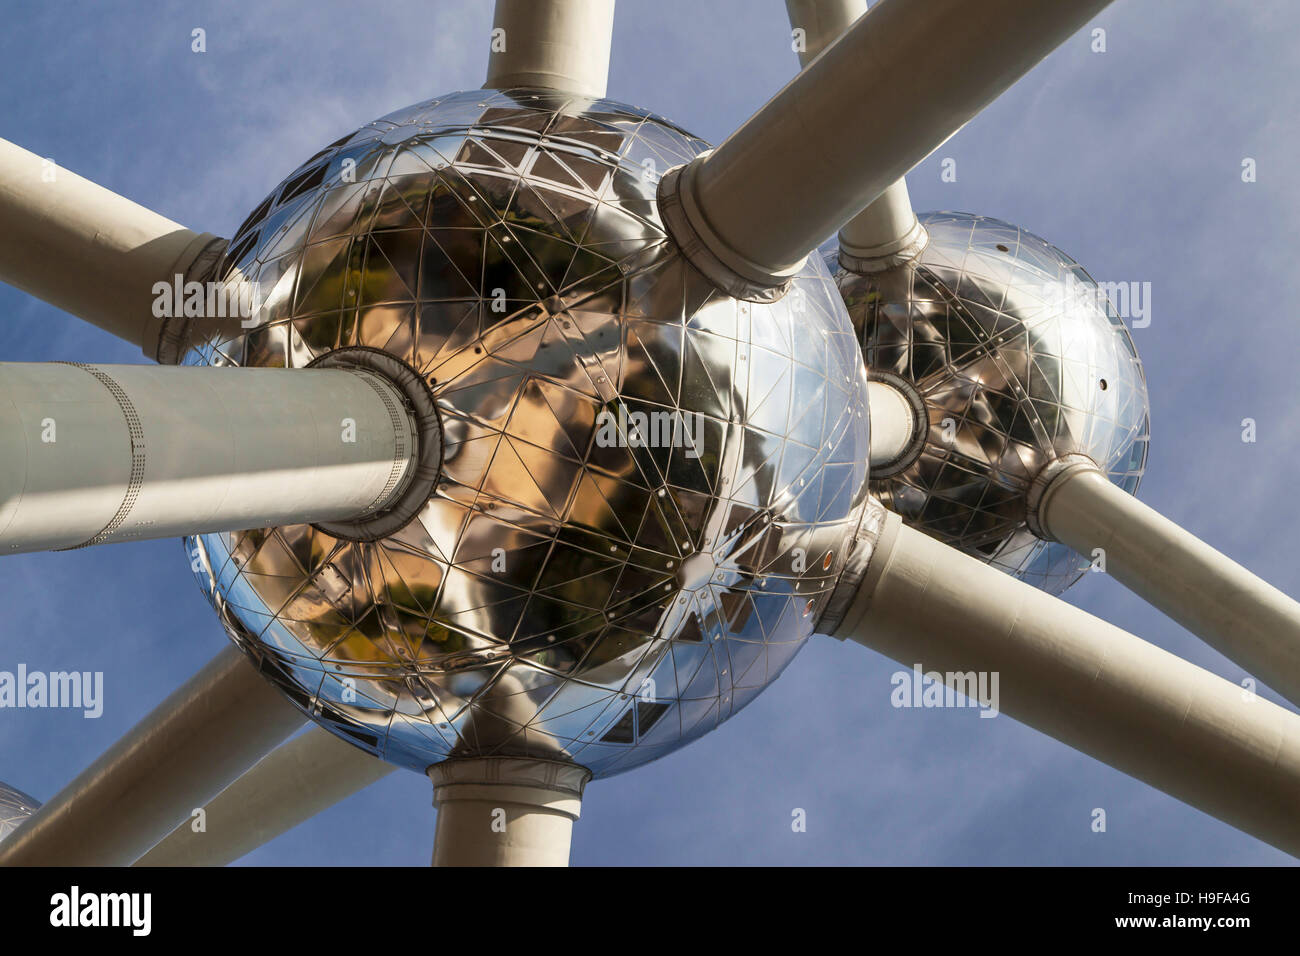 Atoms of the Atomium in Brussels, Belgium. - Stock Image